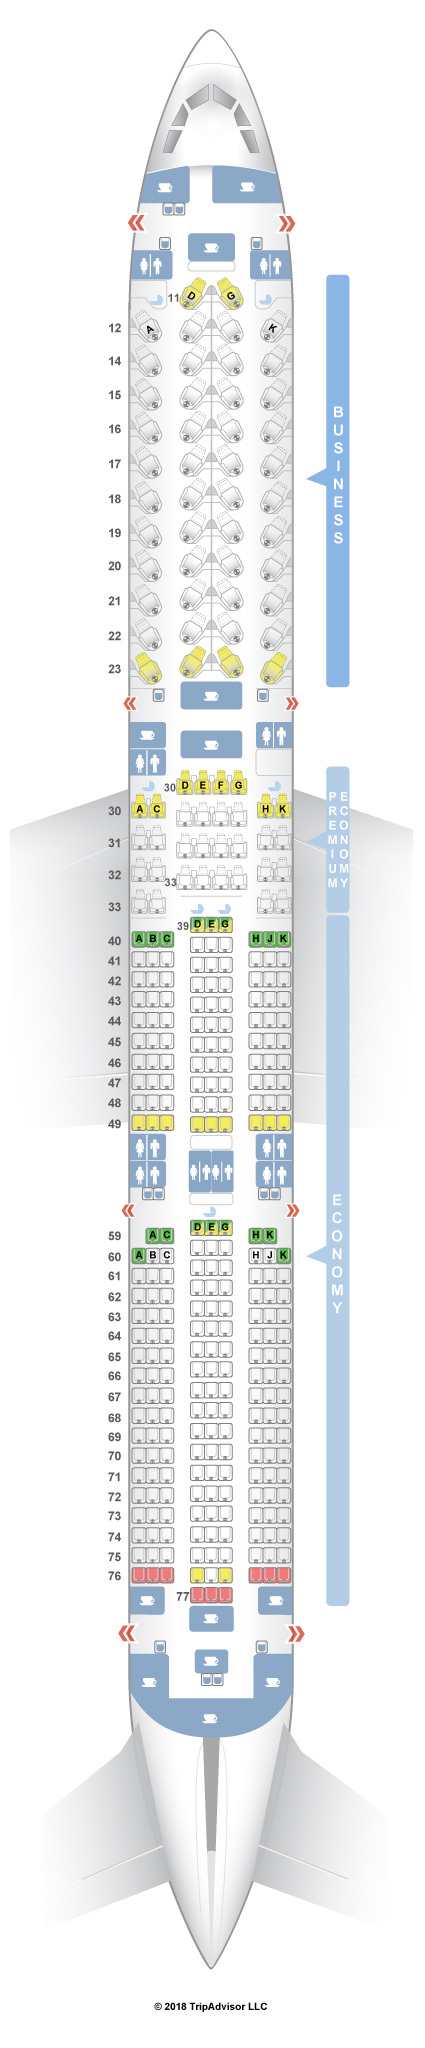 how to choose seats for cathay pacific